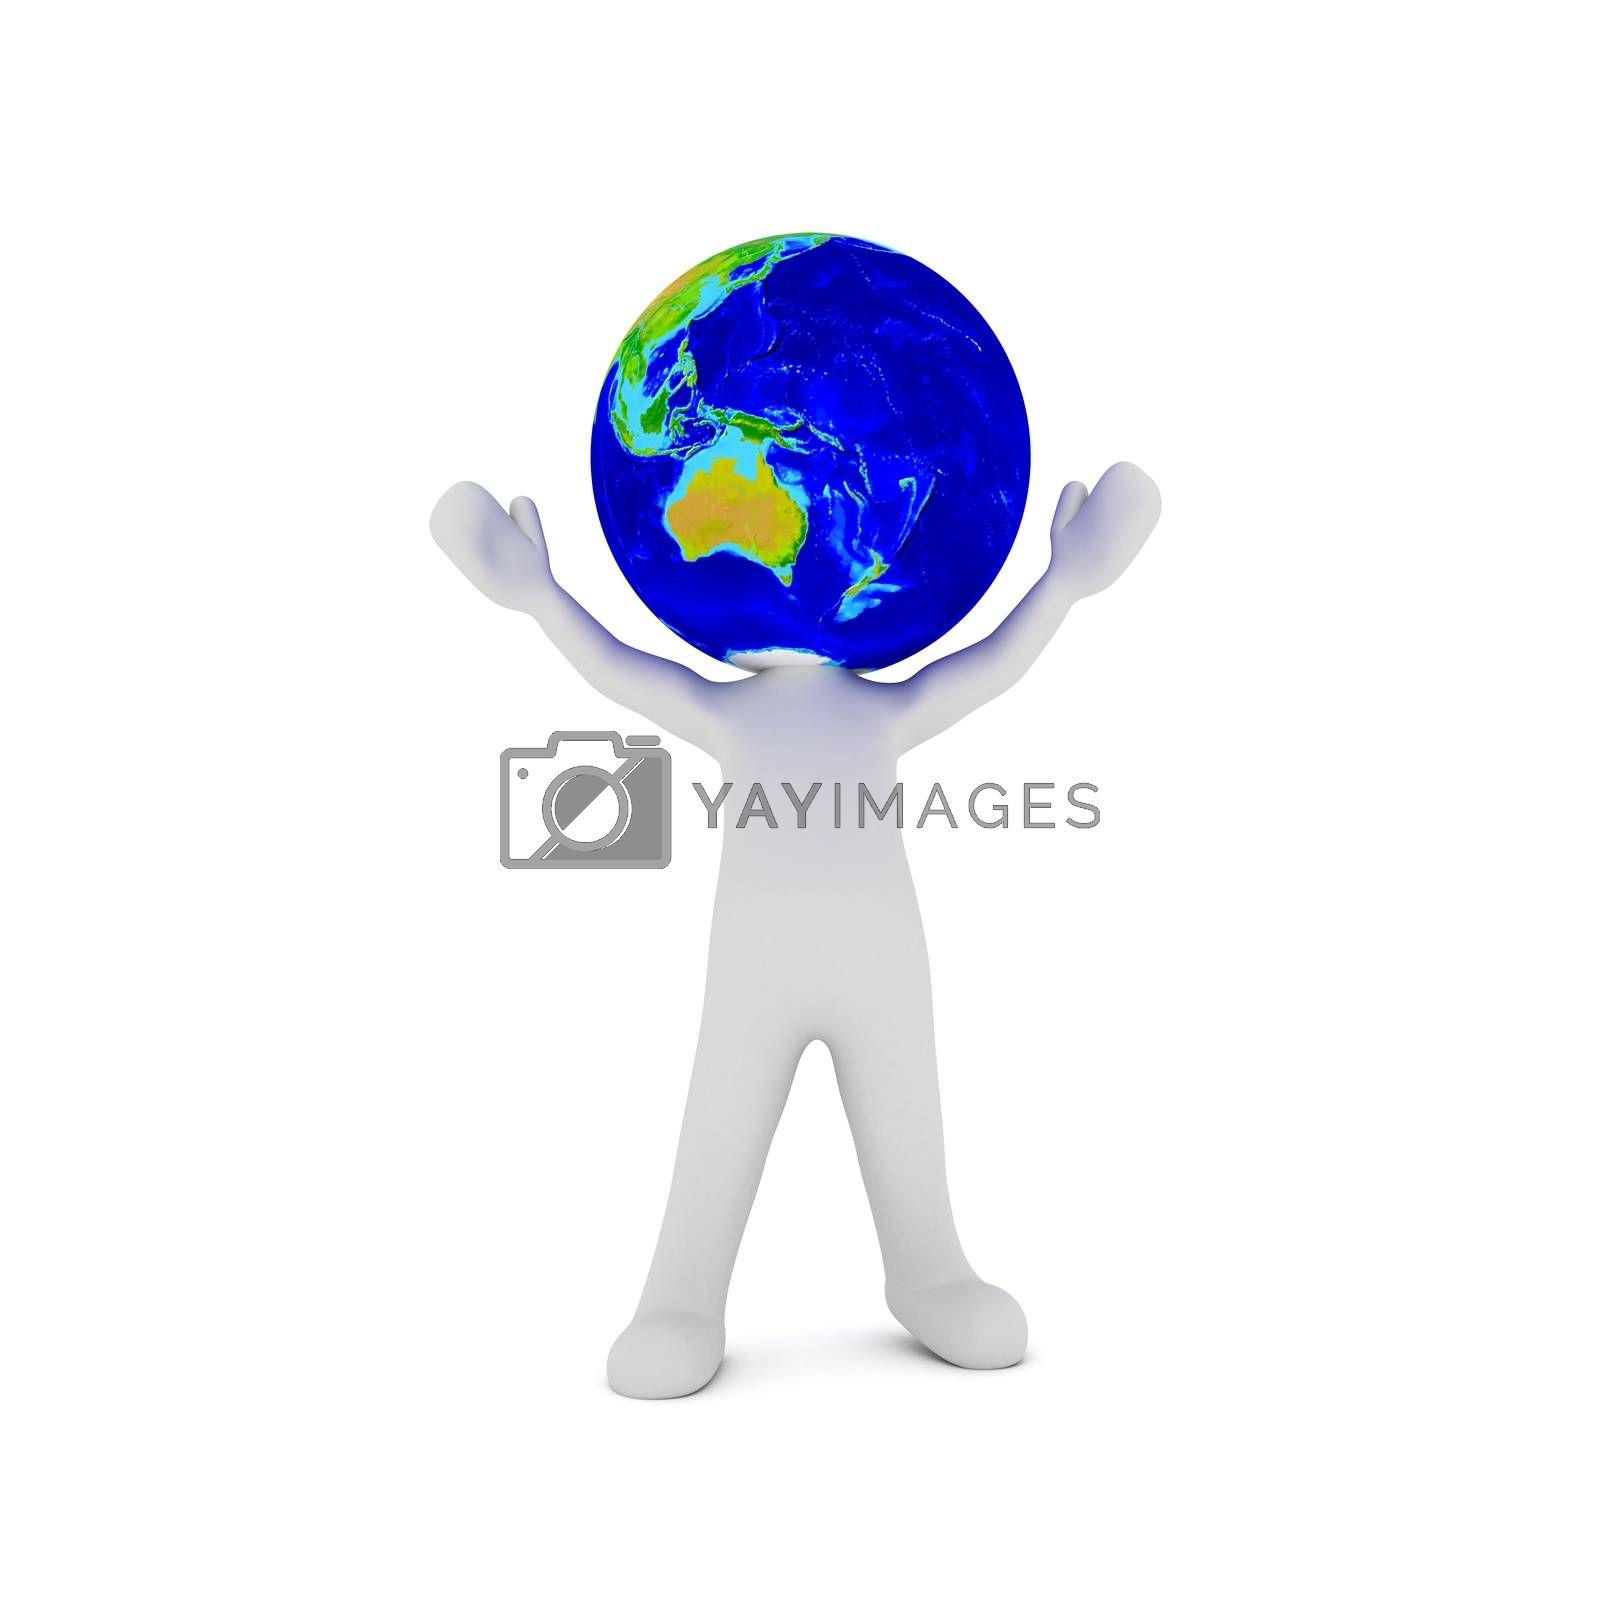 Royalty free image of world ruler by 3DAgentur